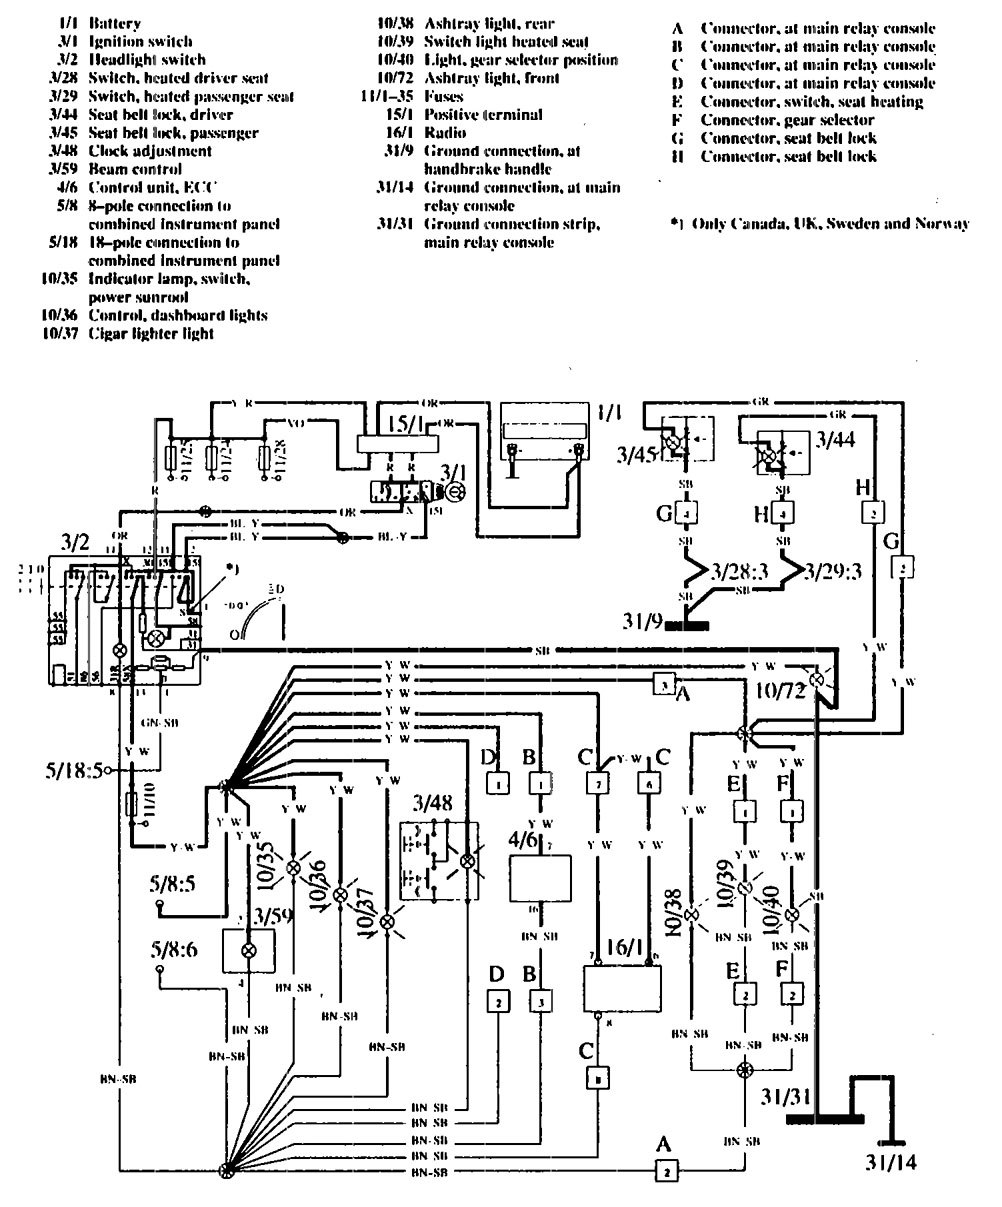 Volvo 760 1990 Wiring Diagrams Instrument Panel Lamps Lamp Rotary Switch Diagram